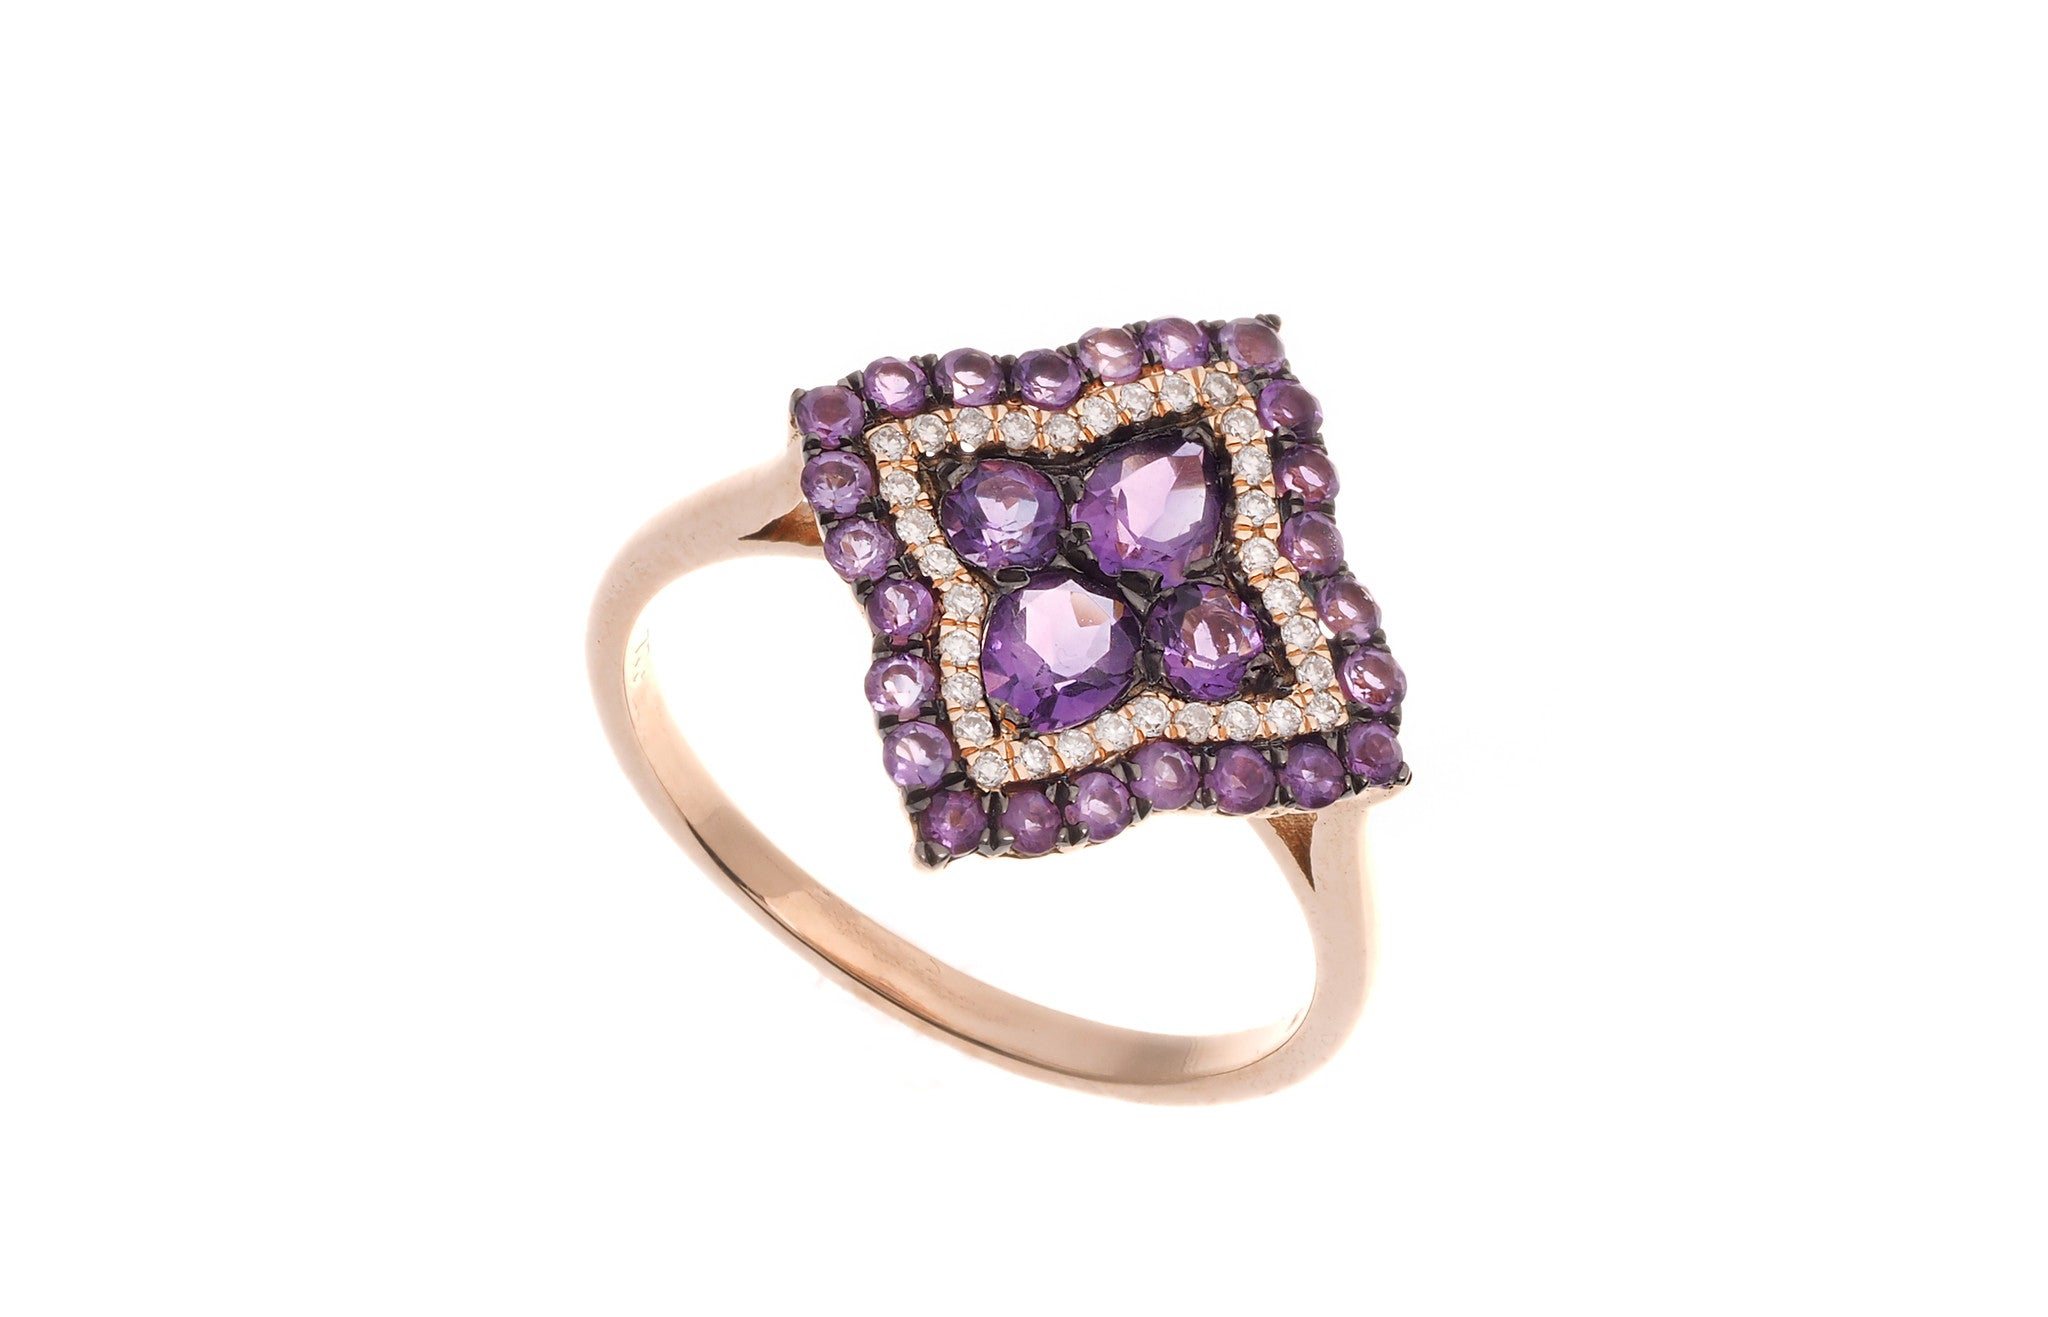 18ct Rose Gold Amethyst & Diamond Dress Ring, Minar Jewellers - 3